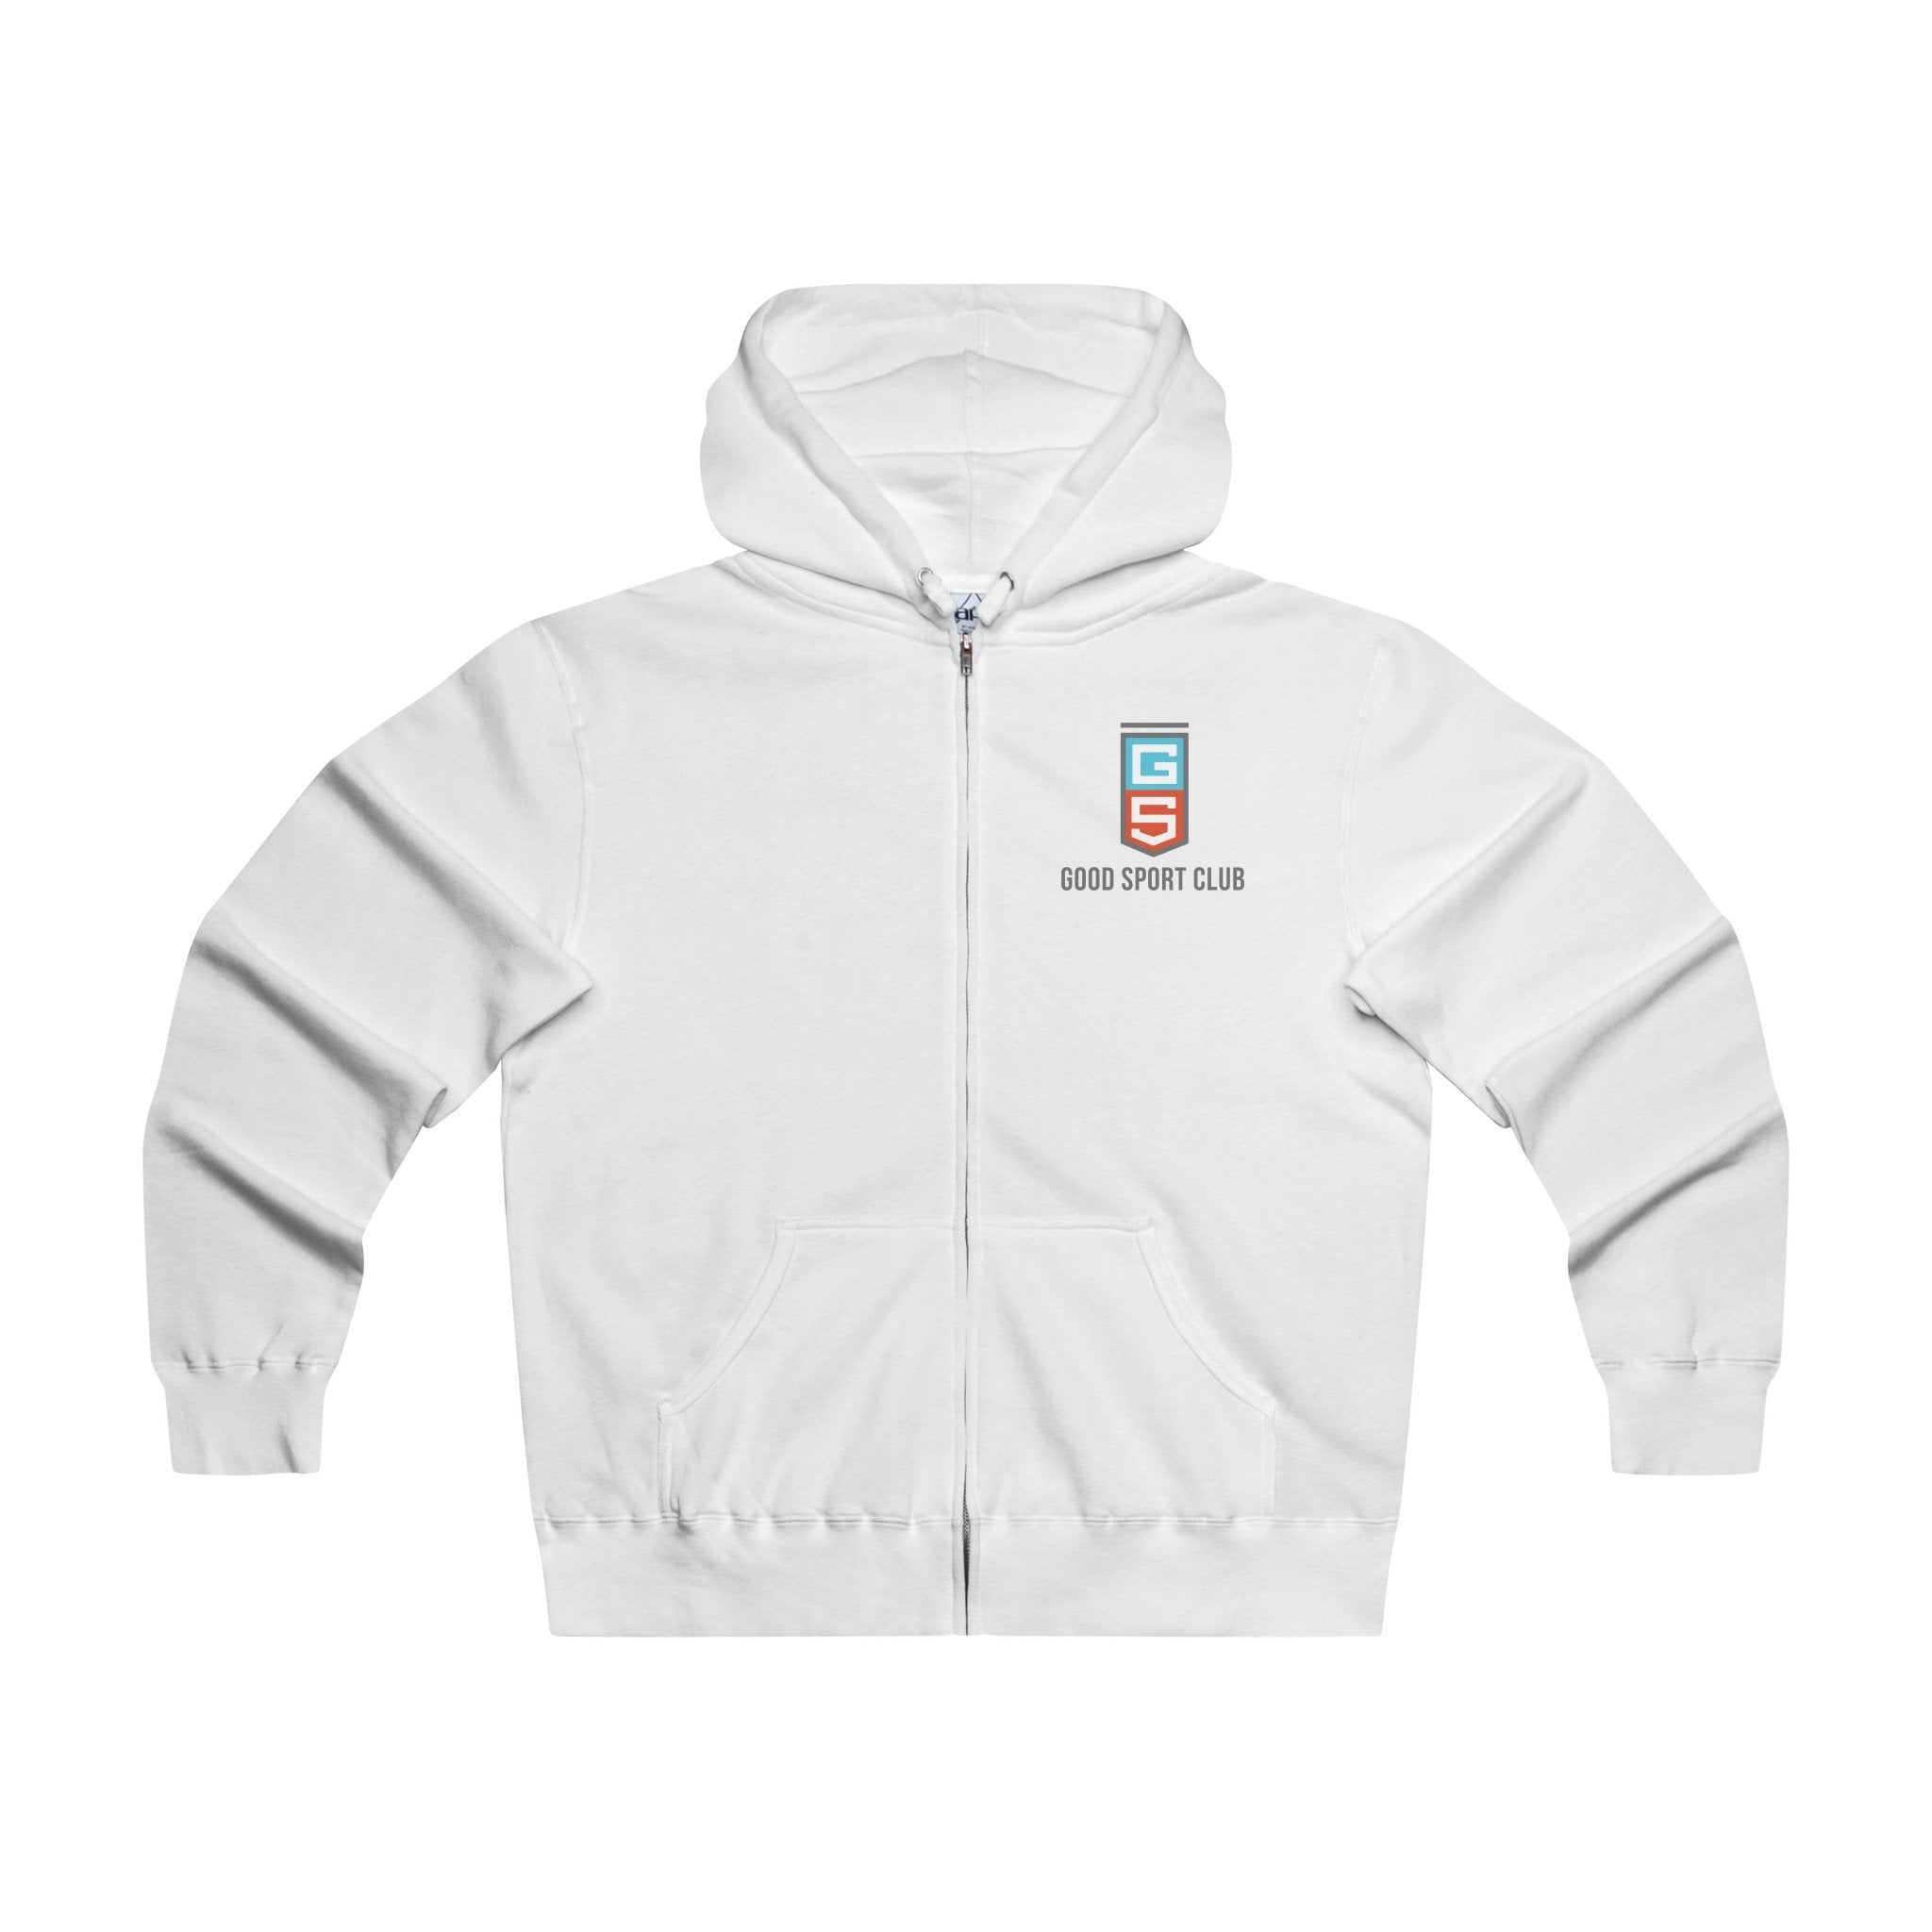 White Hoodie Zip Sweatshirt-Good Sport Club